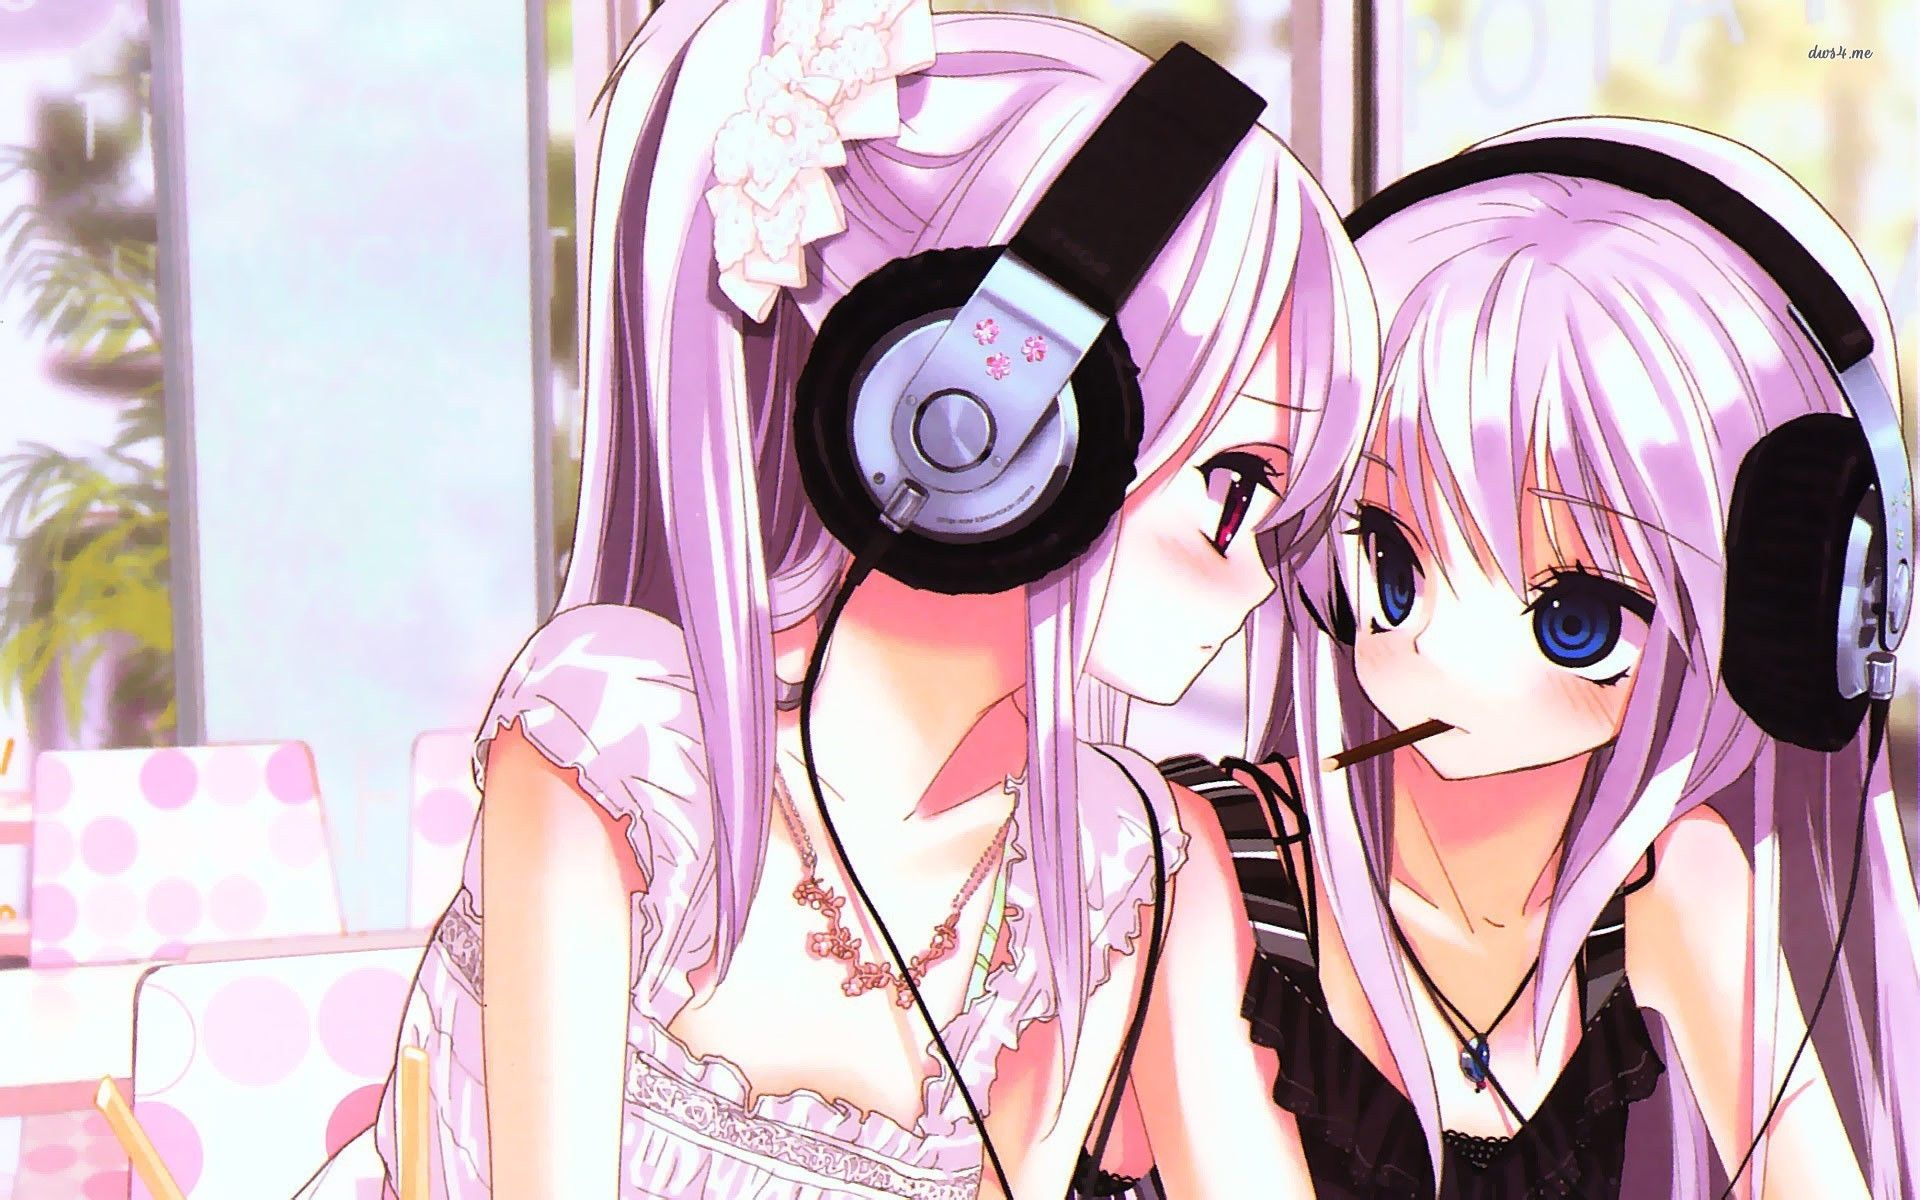 Girls With Headphones Hd Wallpaper Girl With Headphones Anime Wallpaper Anime Wallpaper Download